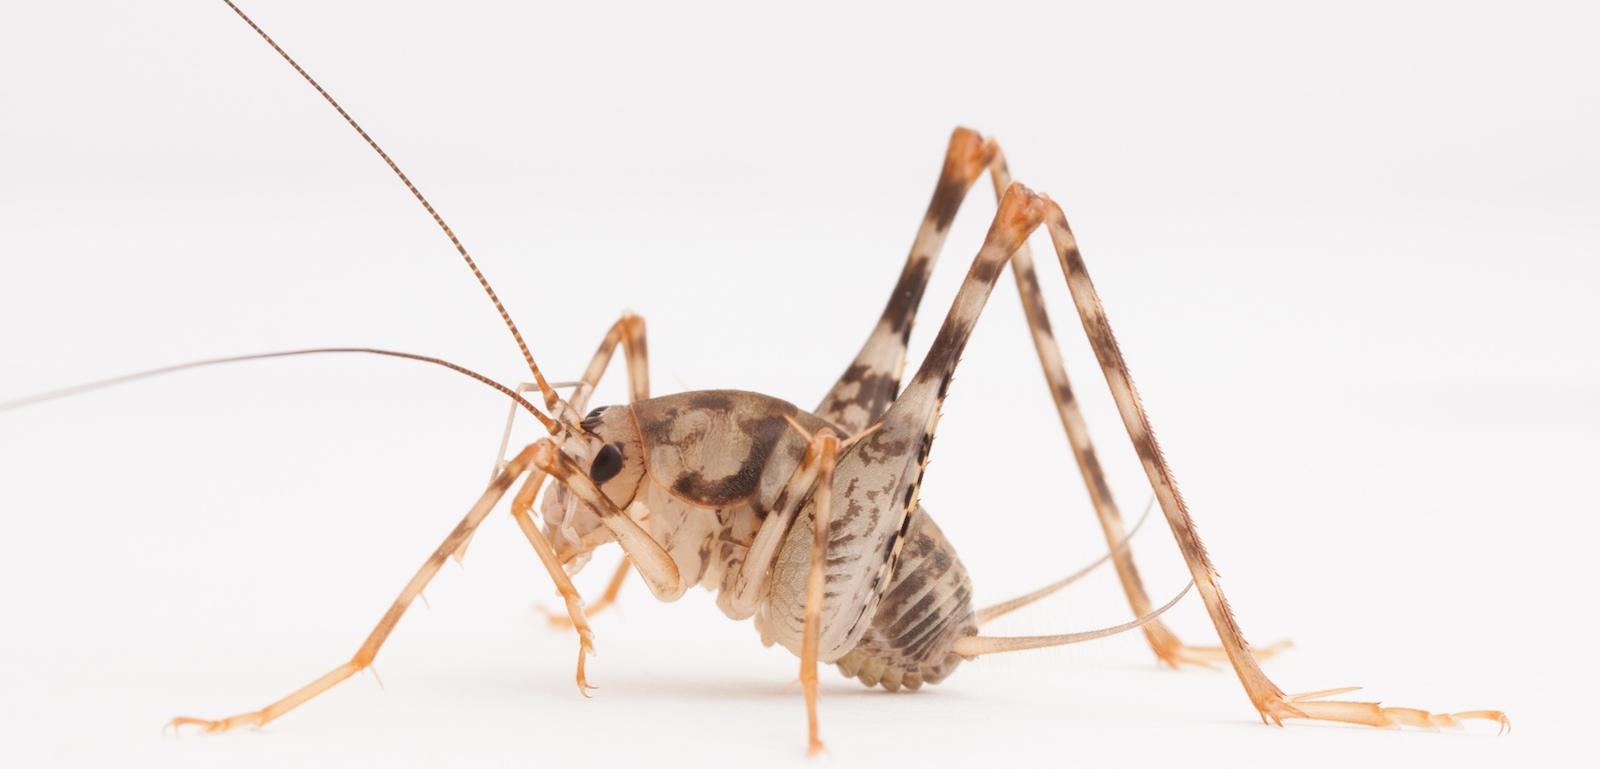 Invasive Asian Camel Crickets are now common in U.S. homes